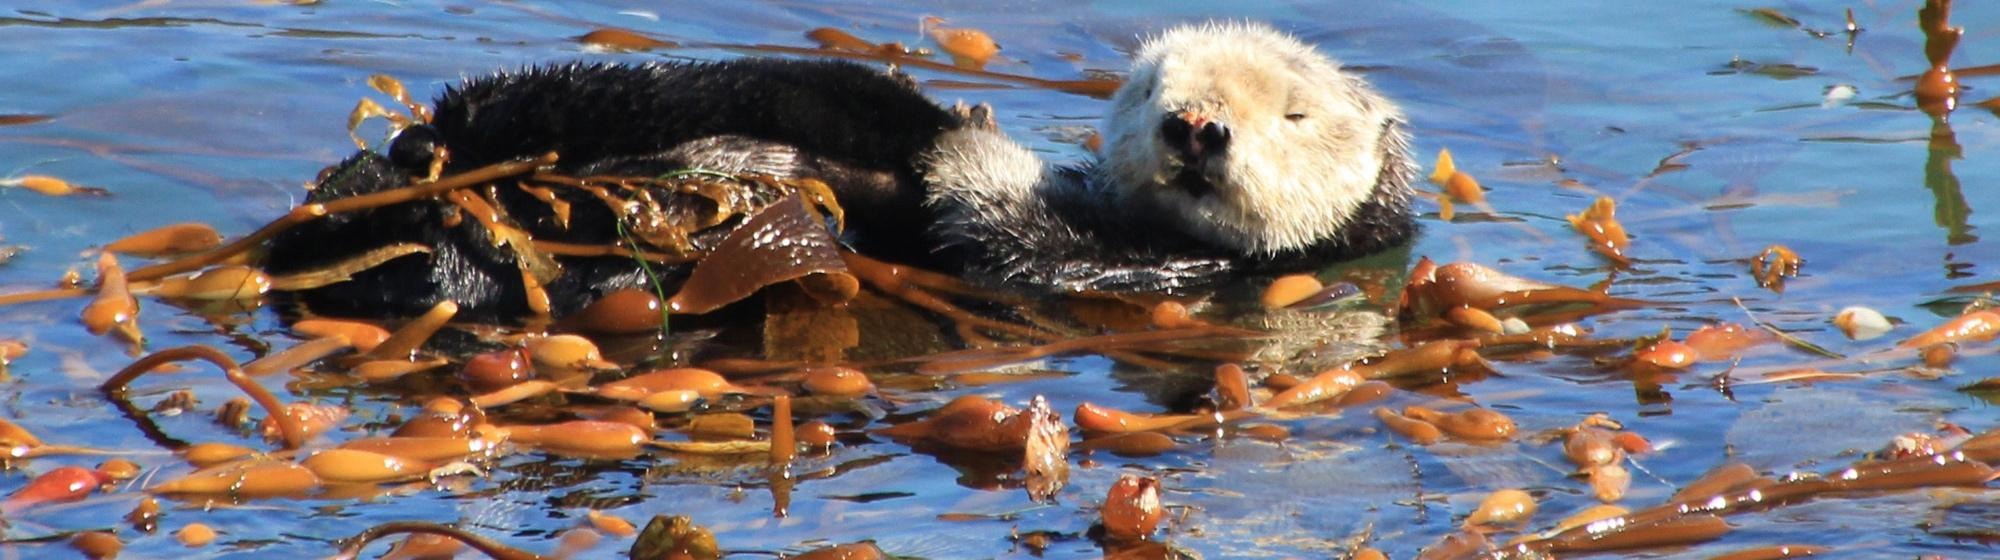 photo of a sea otter